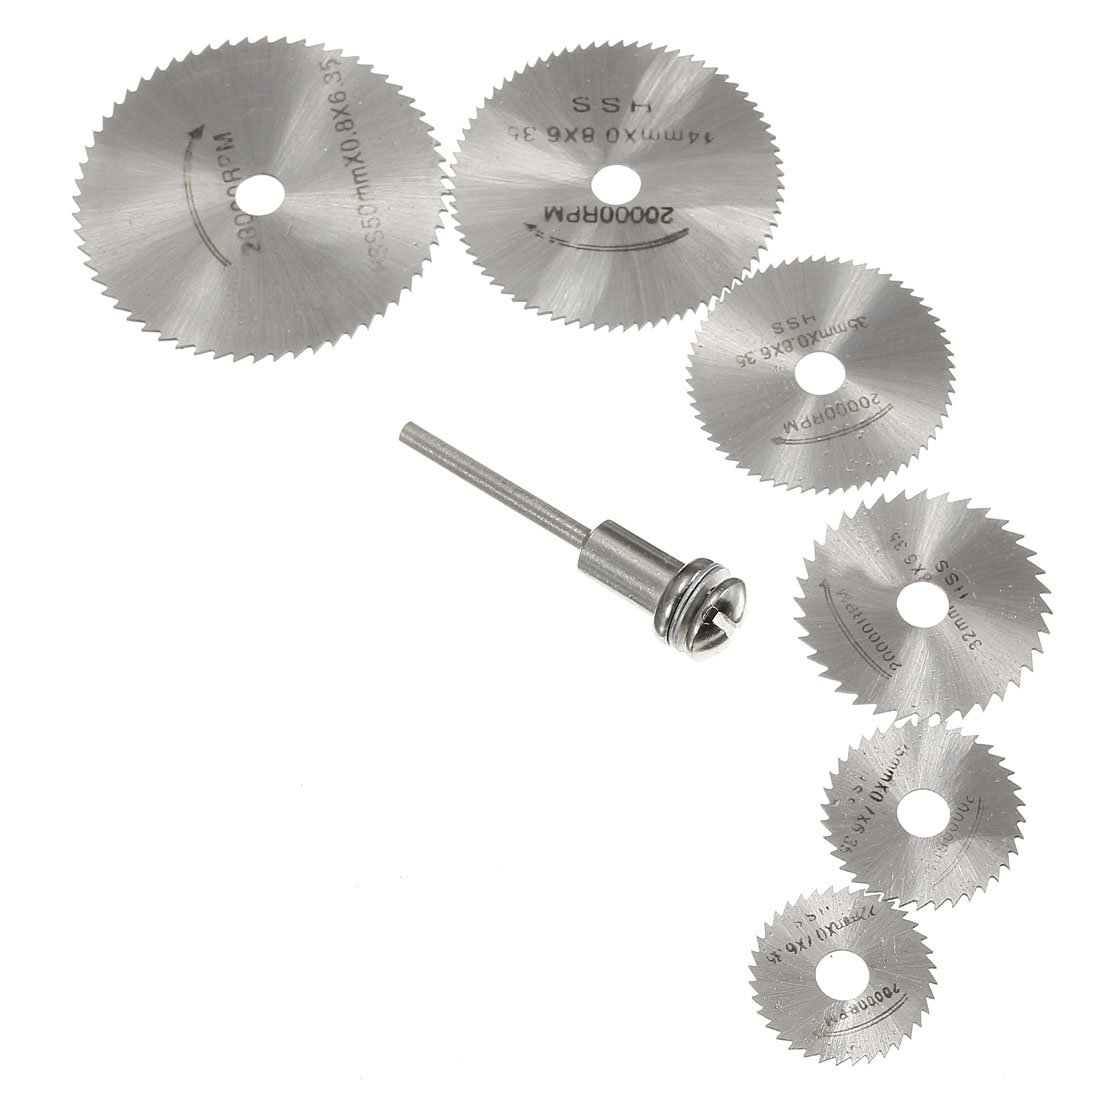 JFBL Kit HSS Circular Drive Saw Blade Circular Teeth + Mandrel for Dremel